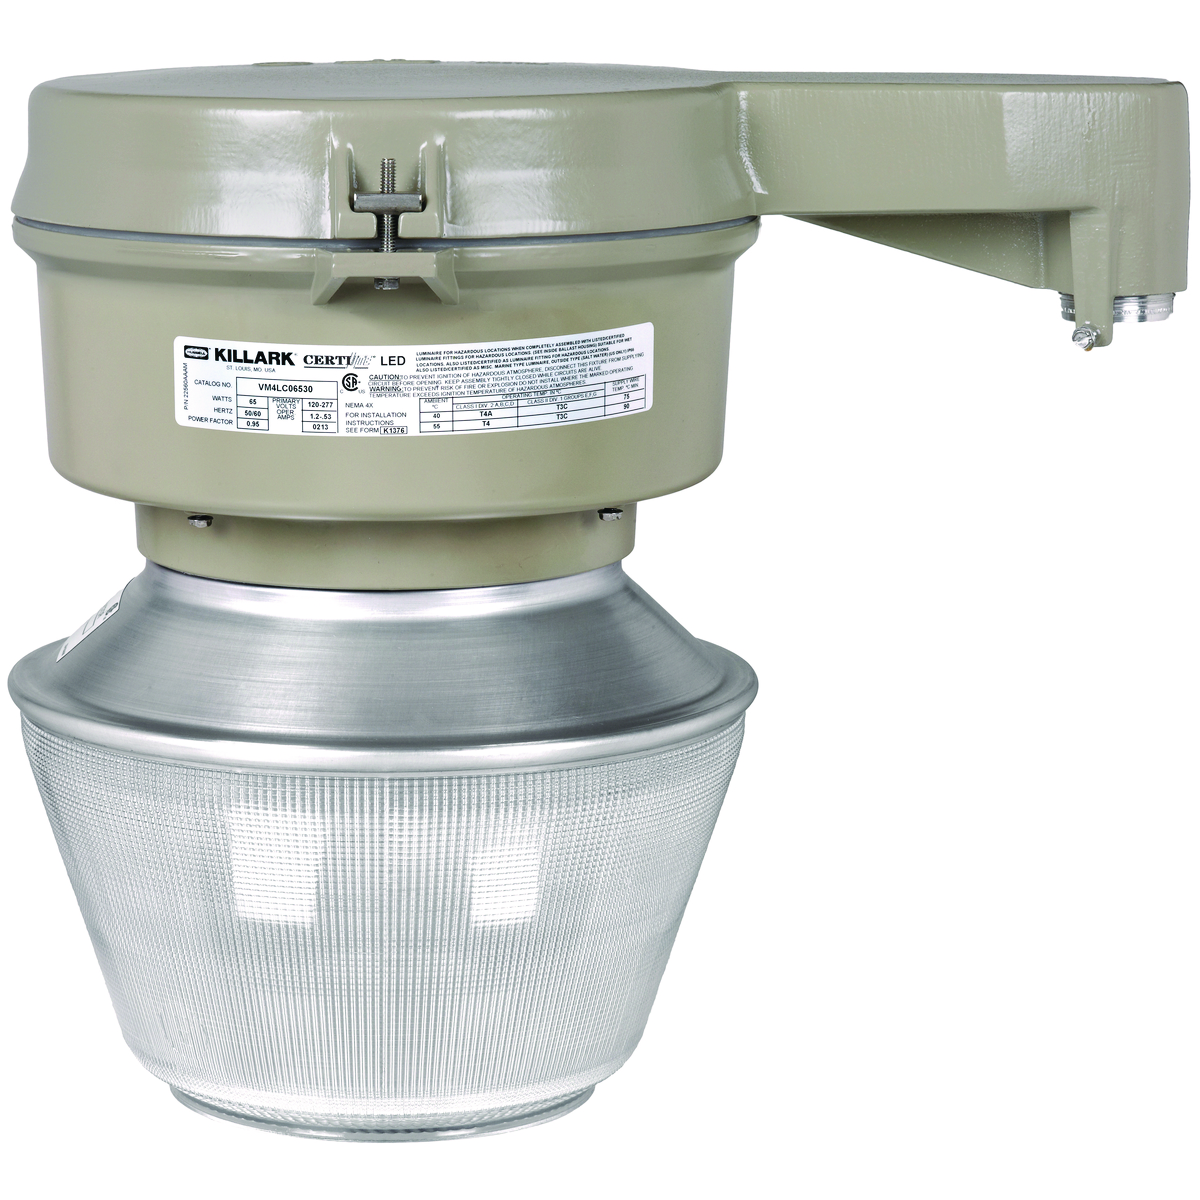 Killark Led High Bay: VM4LC08030S5S5G